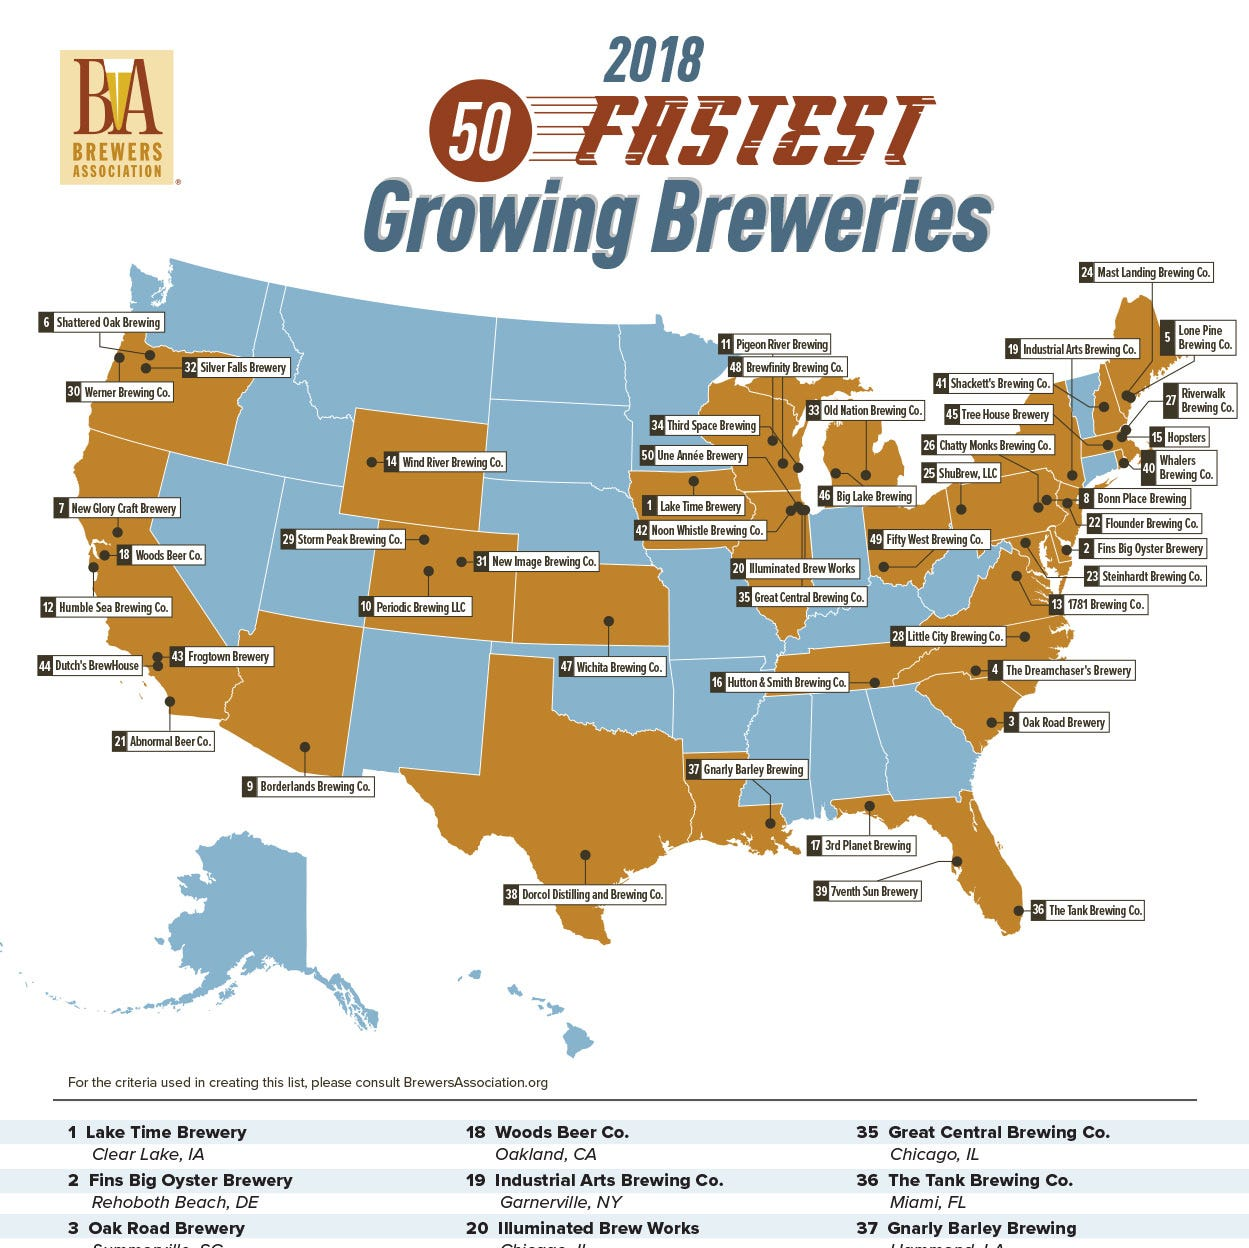 Fifty West Brewing is growing, lands on top 50 list